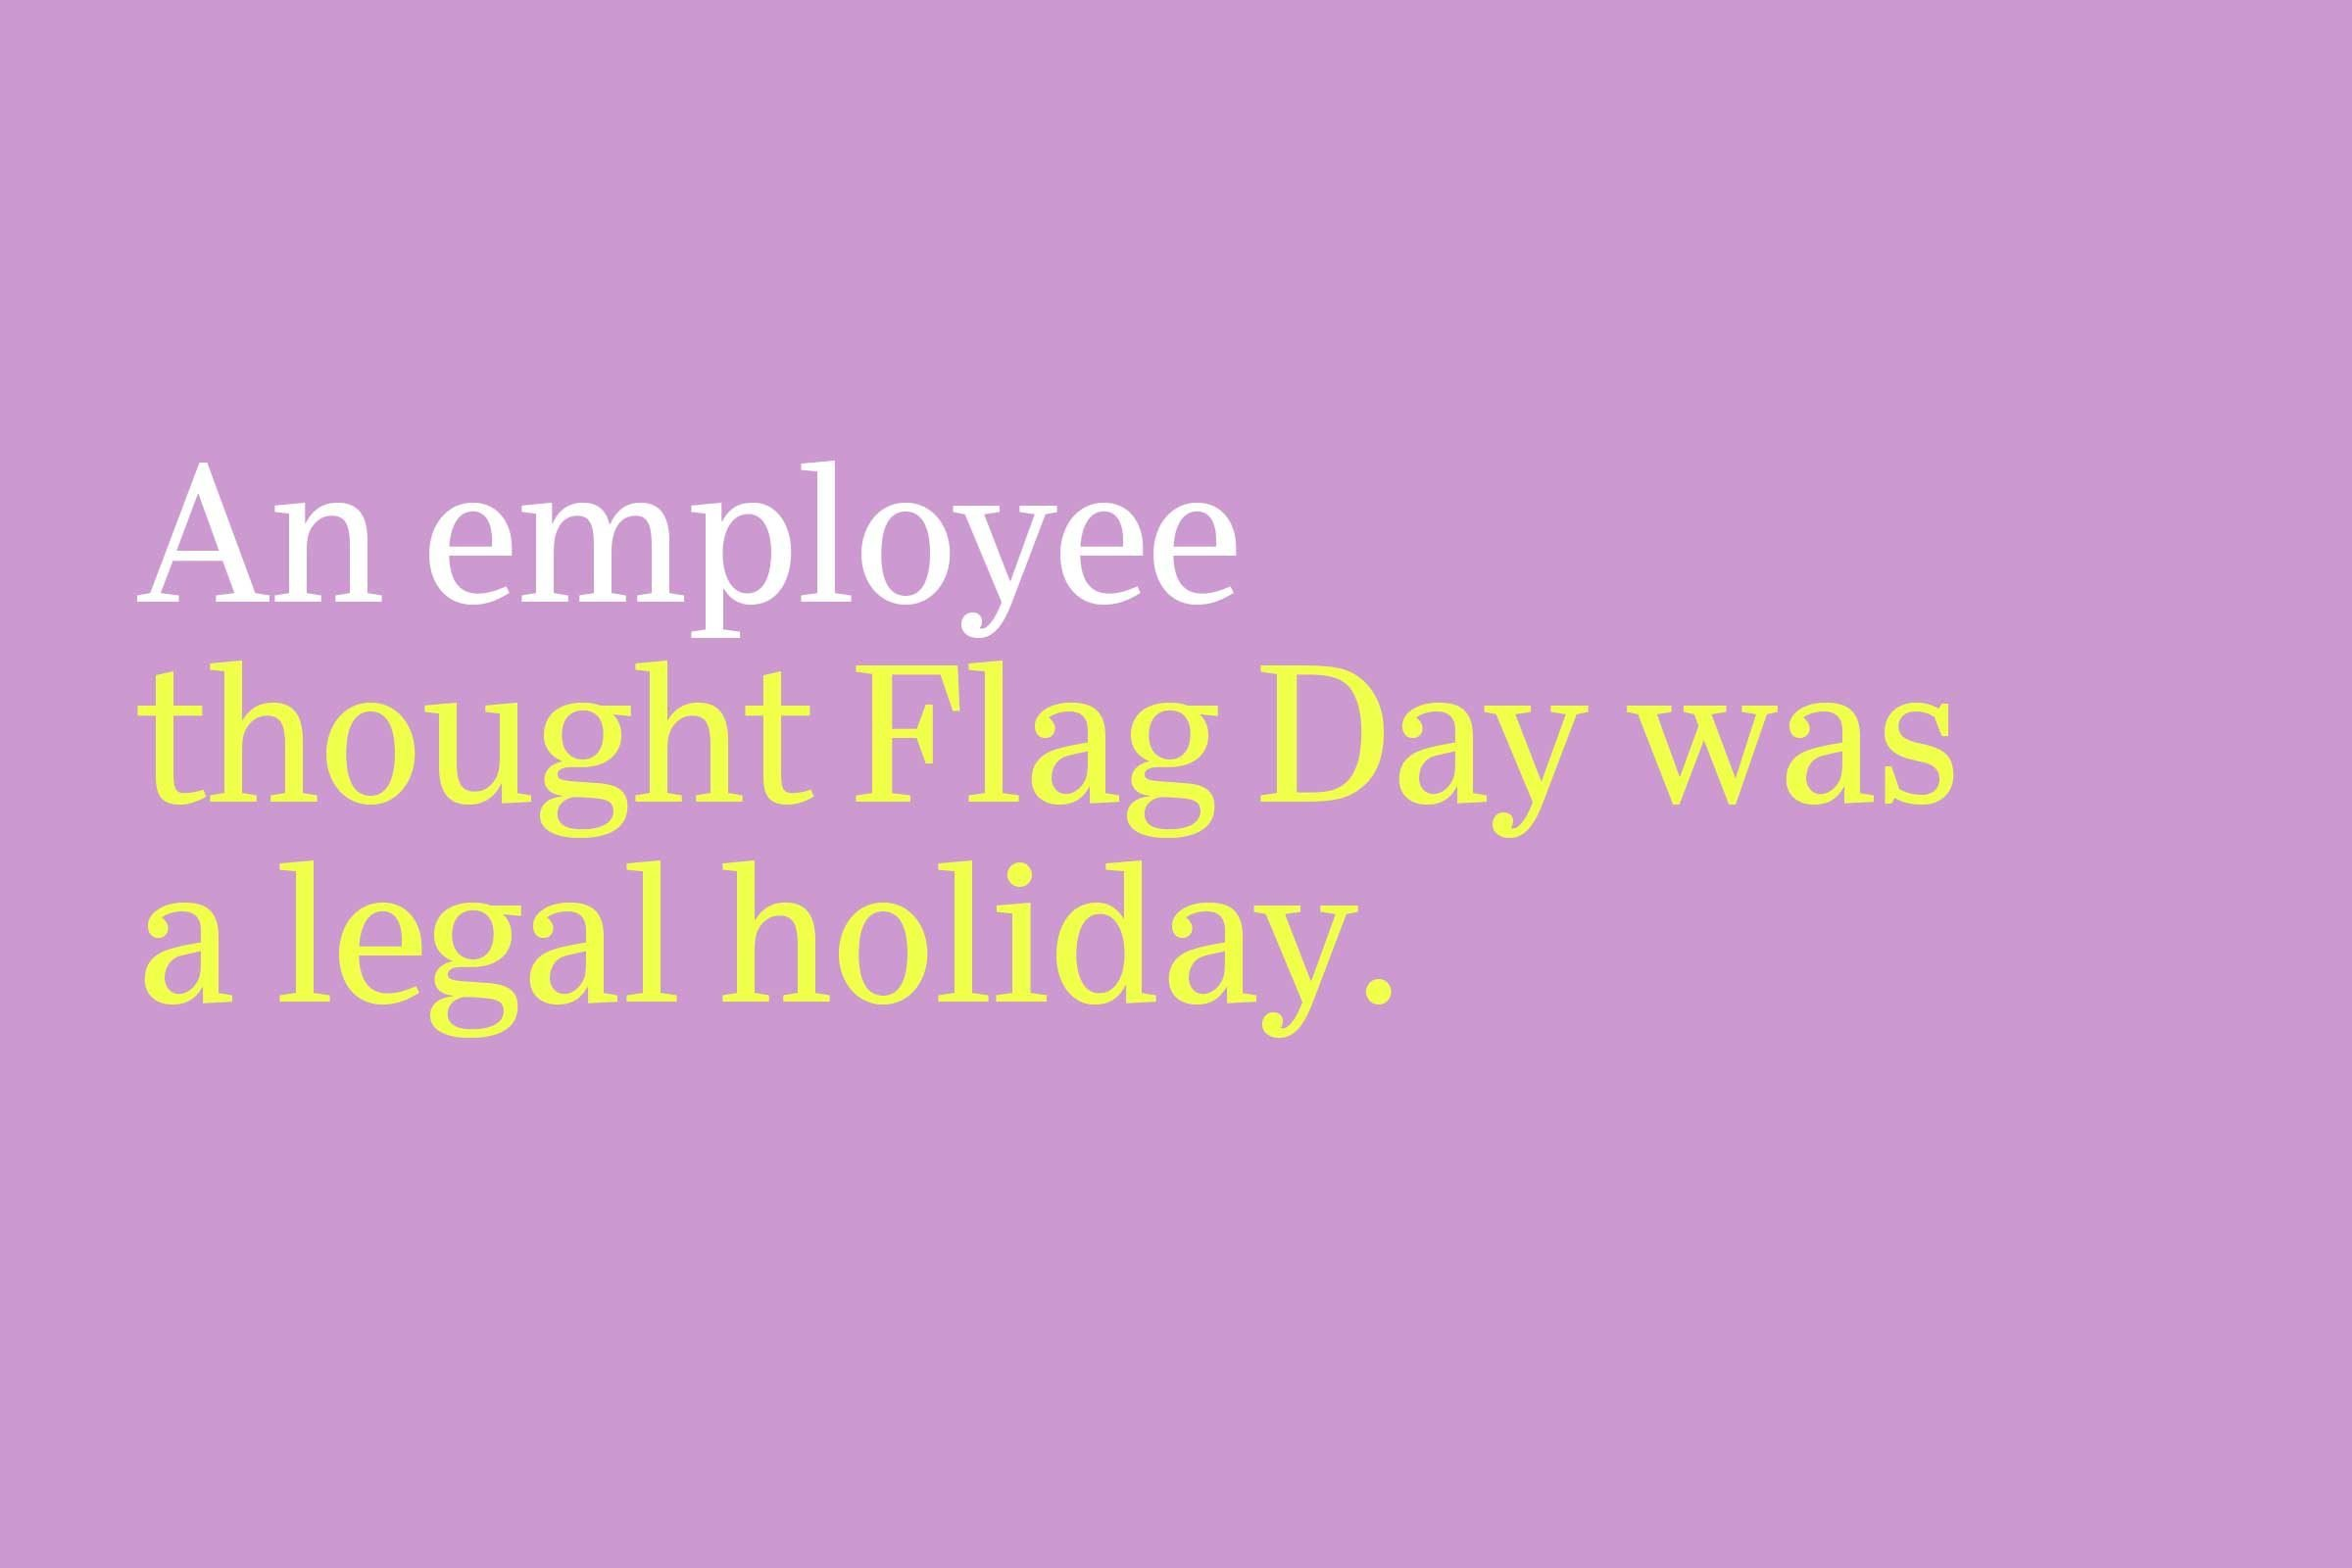 thought Flag Day was a legal holiday